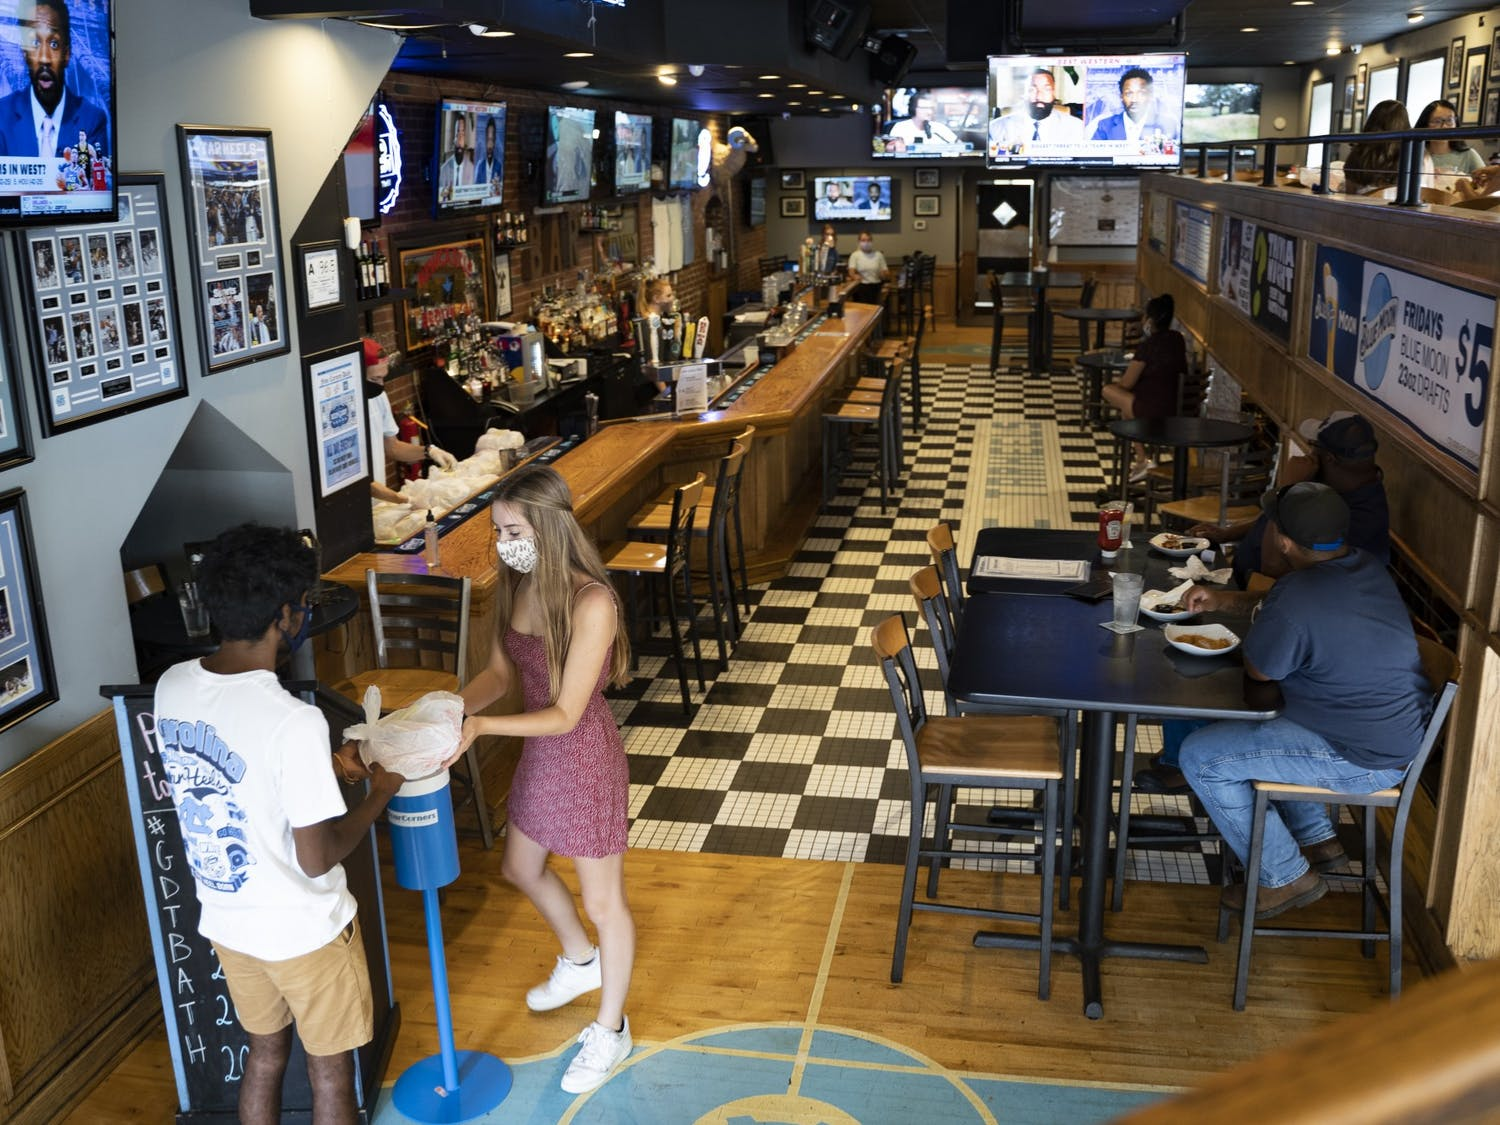 A customer receives his take-out order from Four Corners on Franklin Street on Thursday, Aug. 6, 2020. Game day restaurants like this one have seen and will likely continue to see much less traffic than normal due to COVID-19's impact on dining and sports.